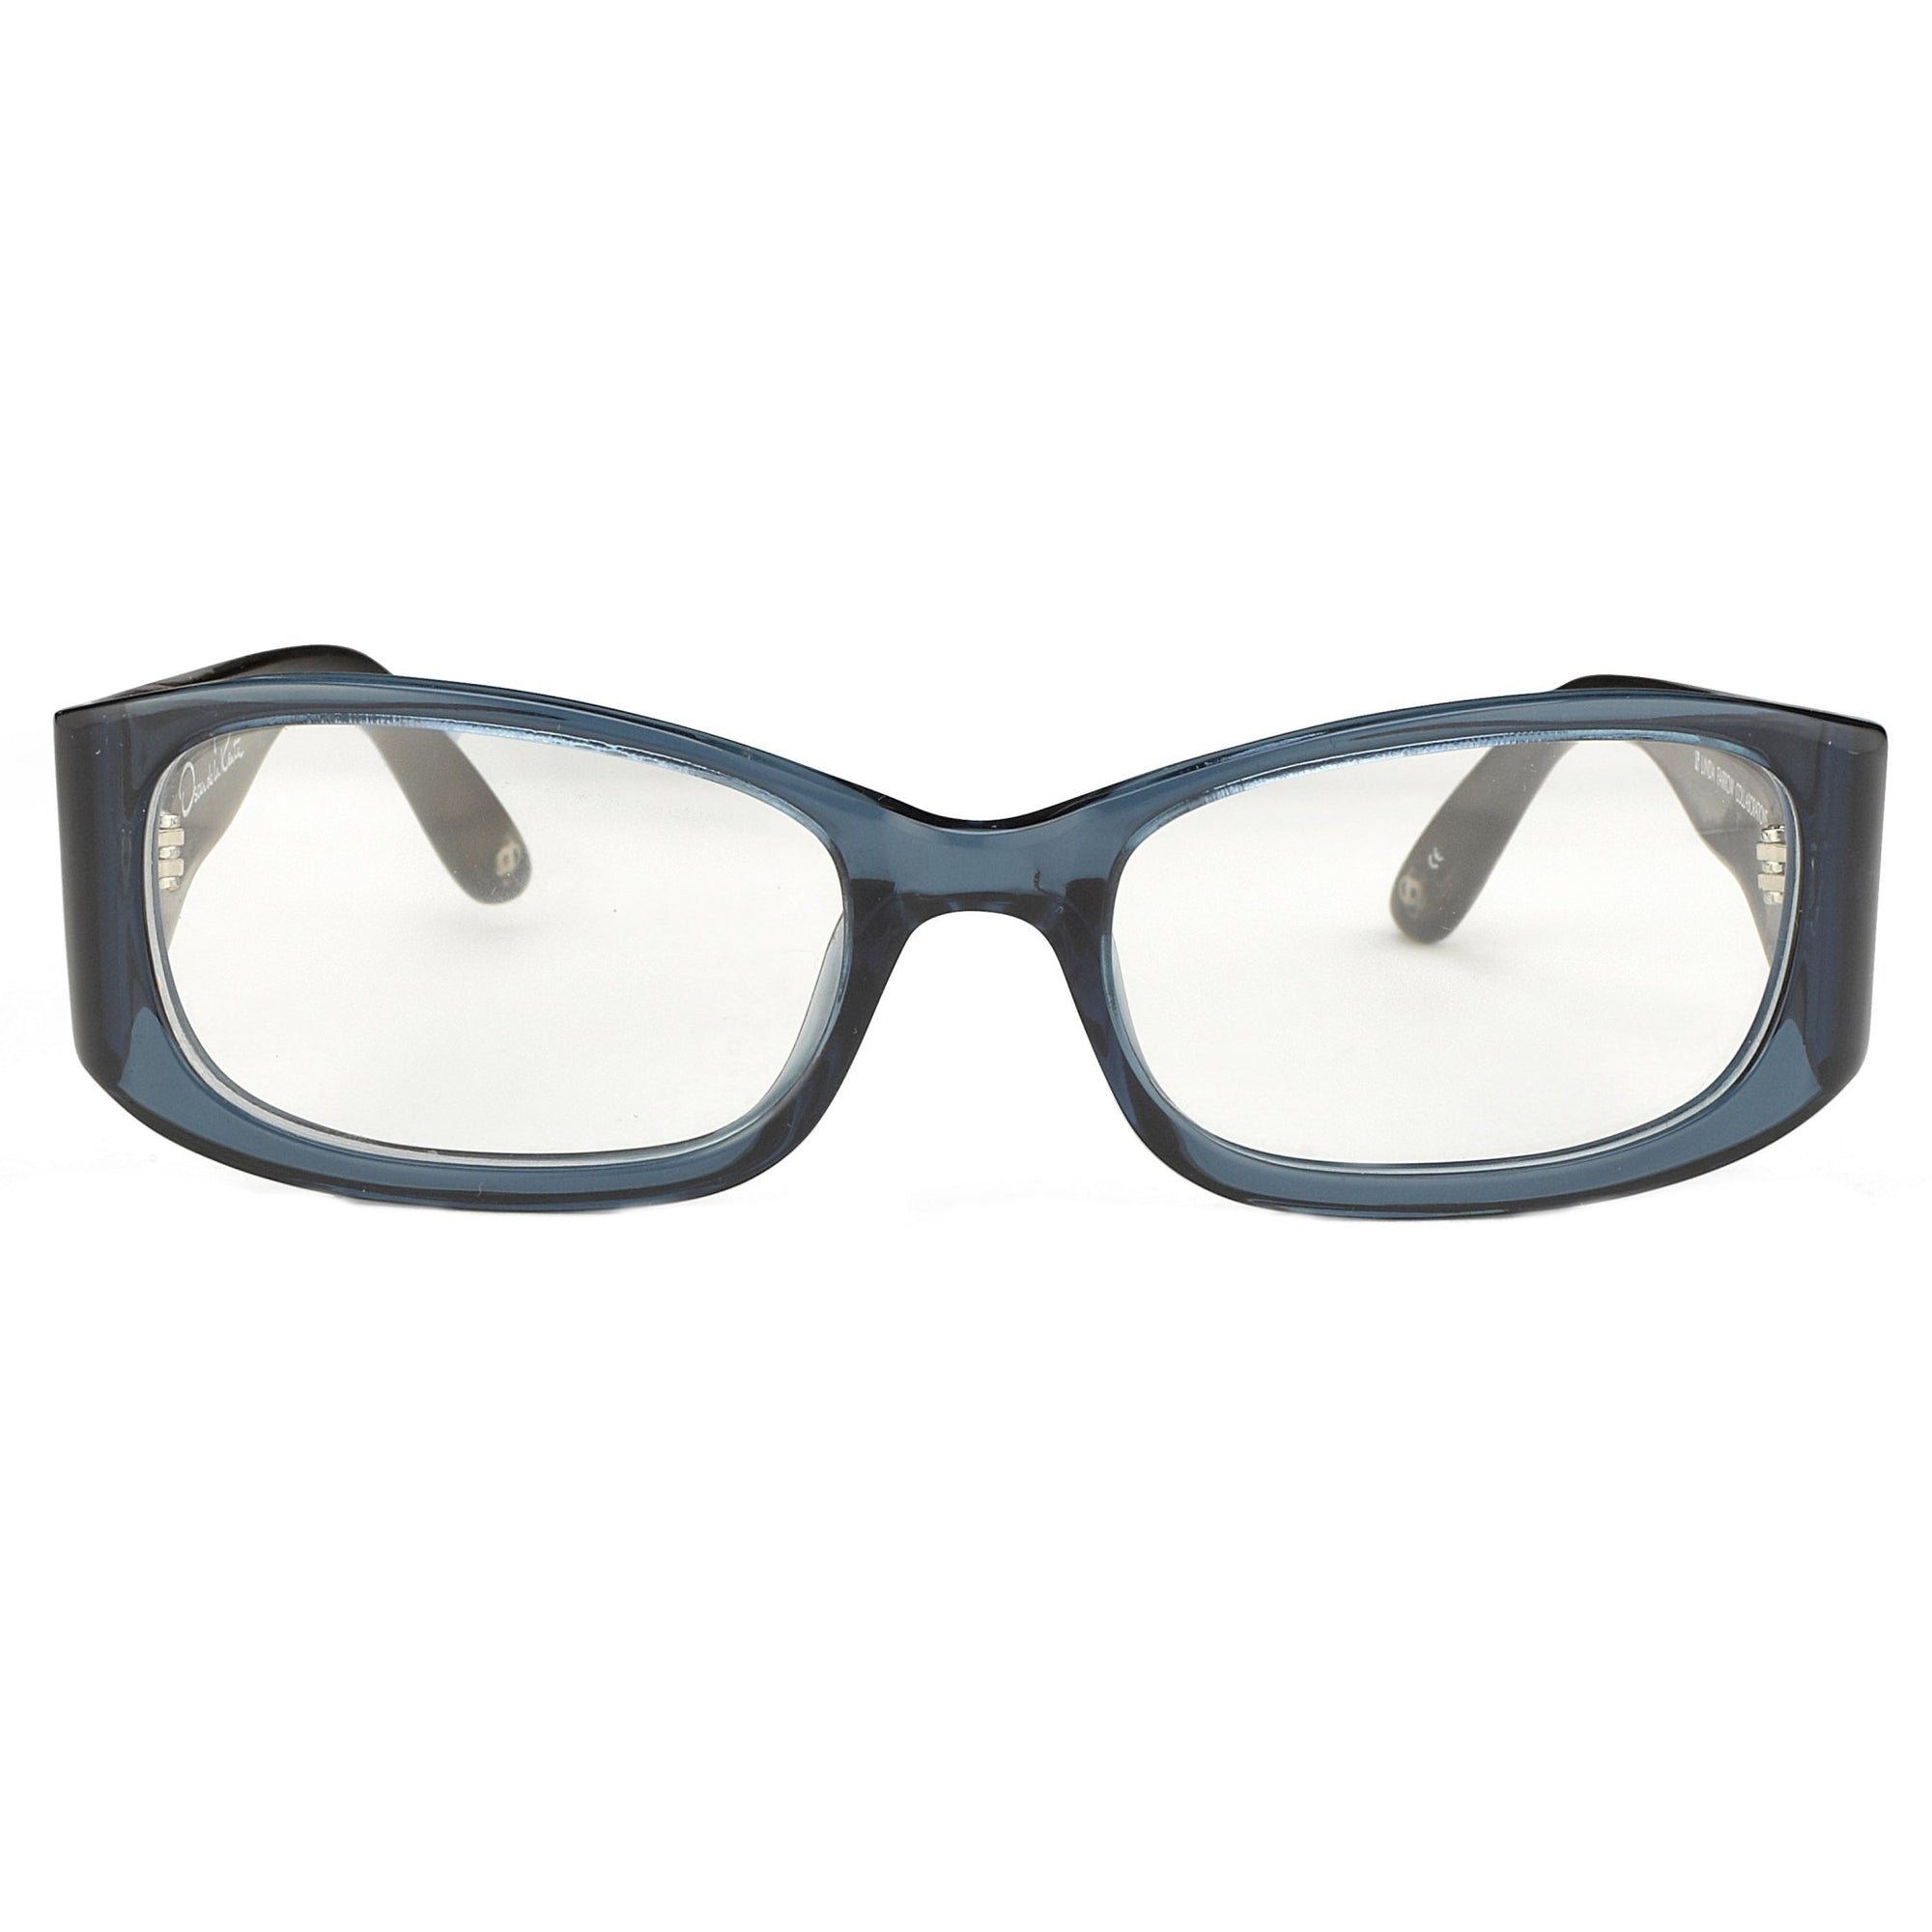 Oscar De La Renta Unisex Eyeglasses Sandalwood D-Frame Blue and Clear Lenses - ODLR42C4OPT - Watches & Crystals